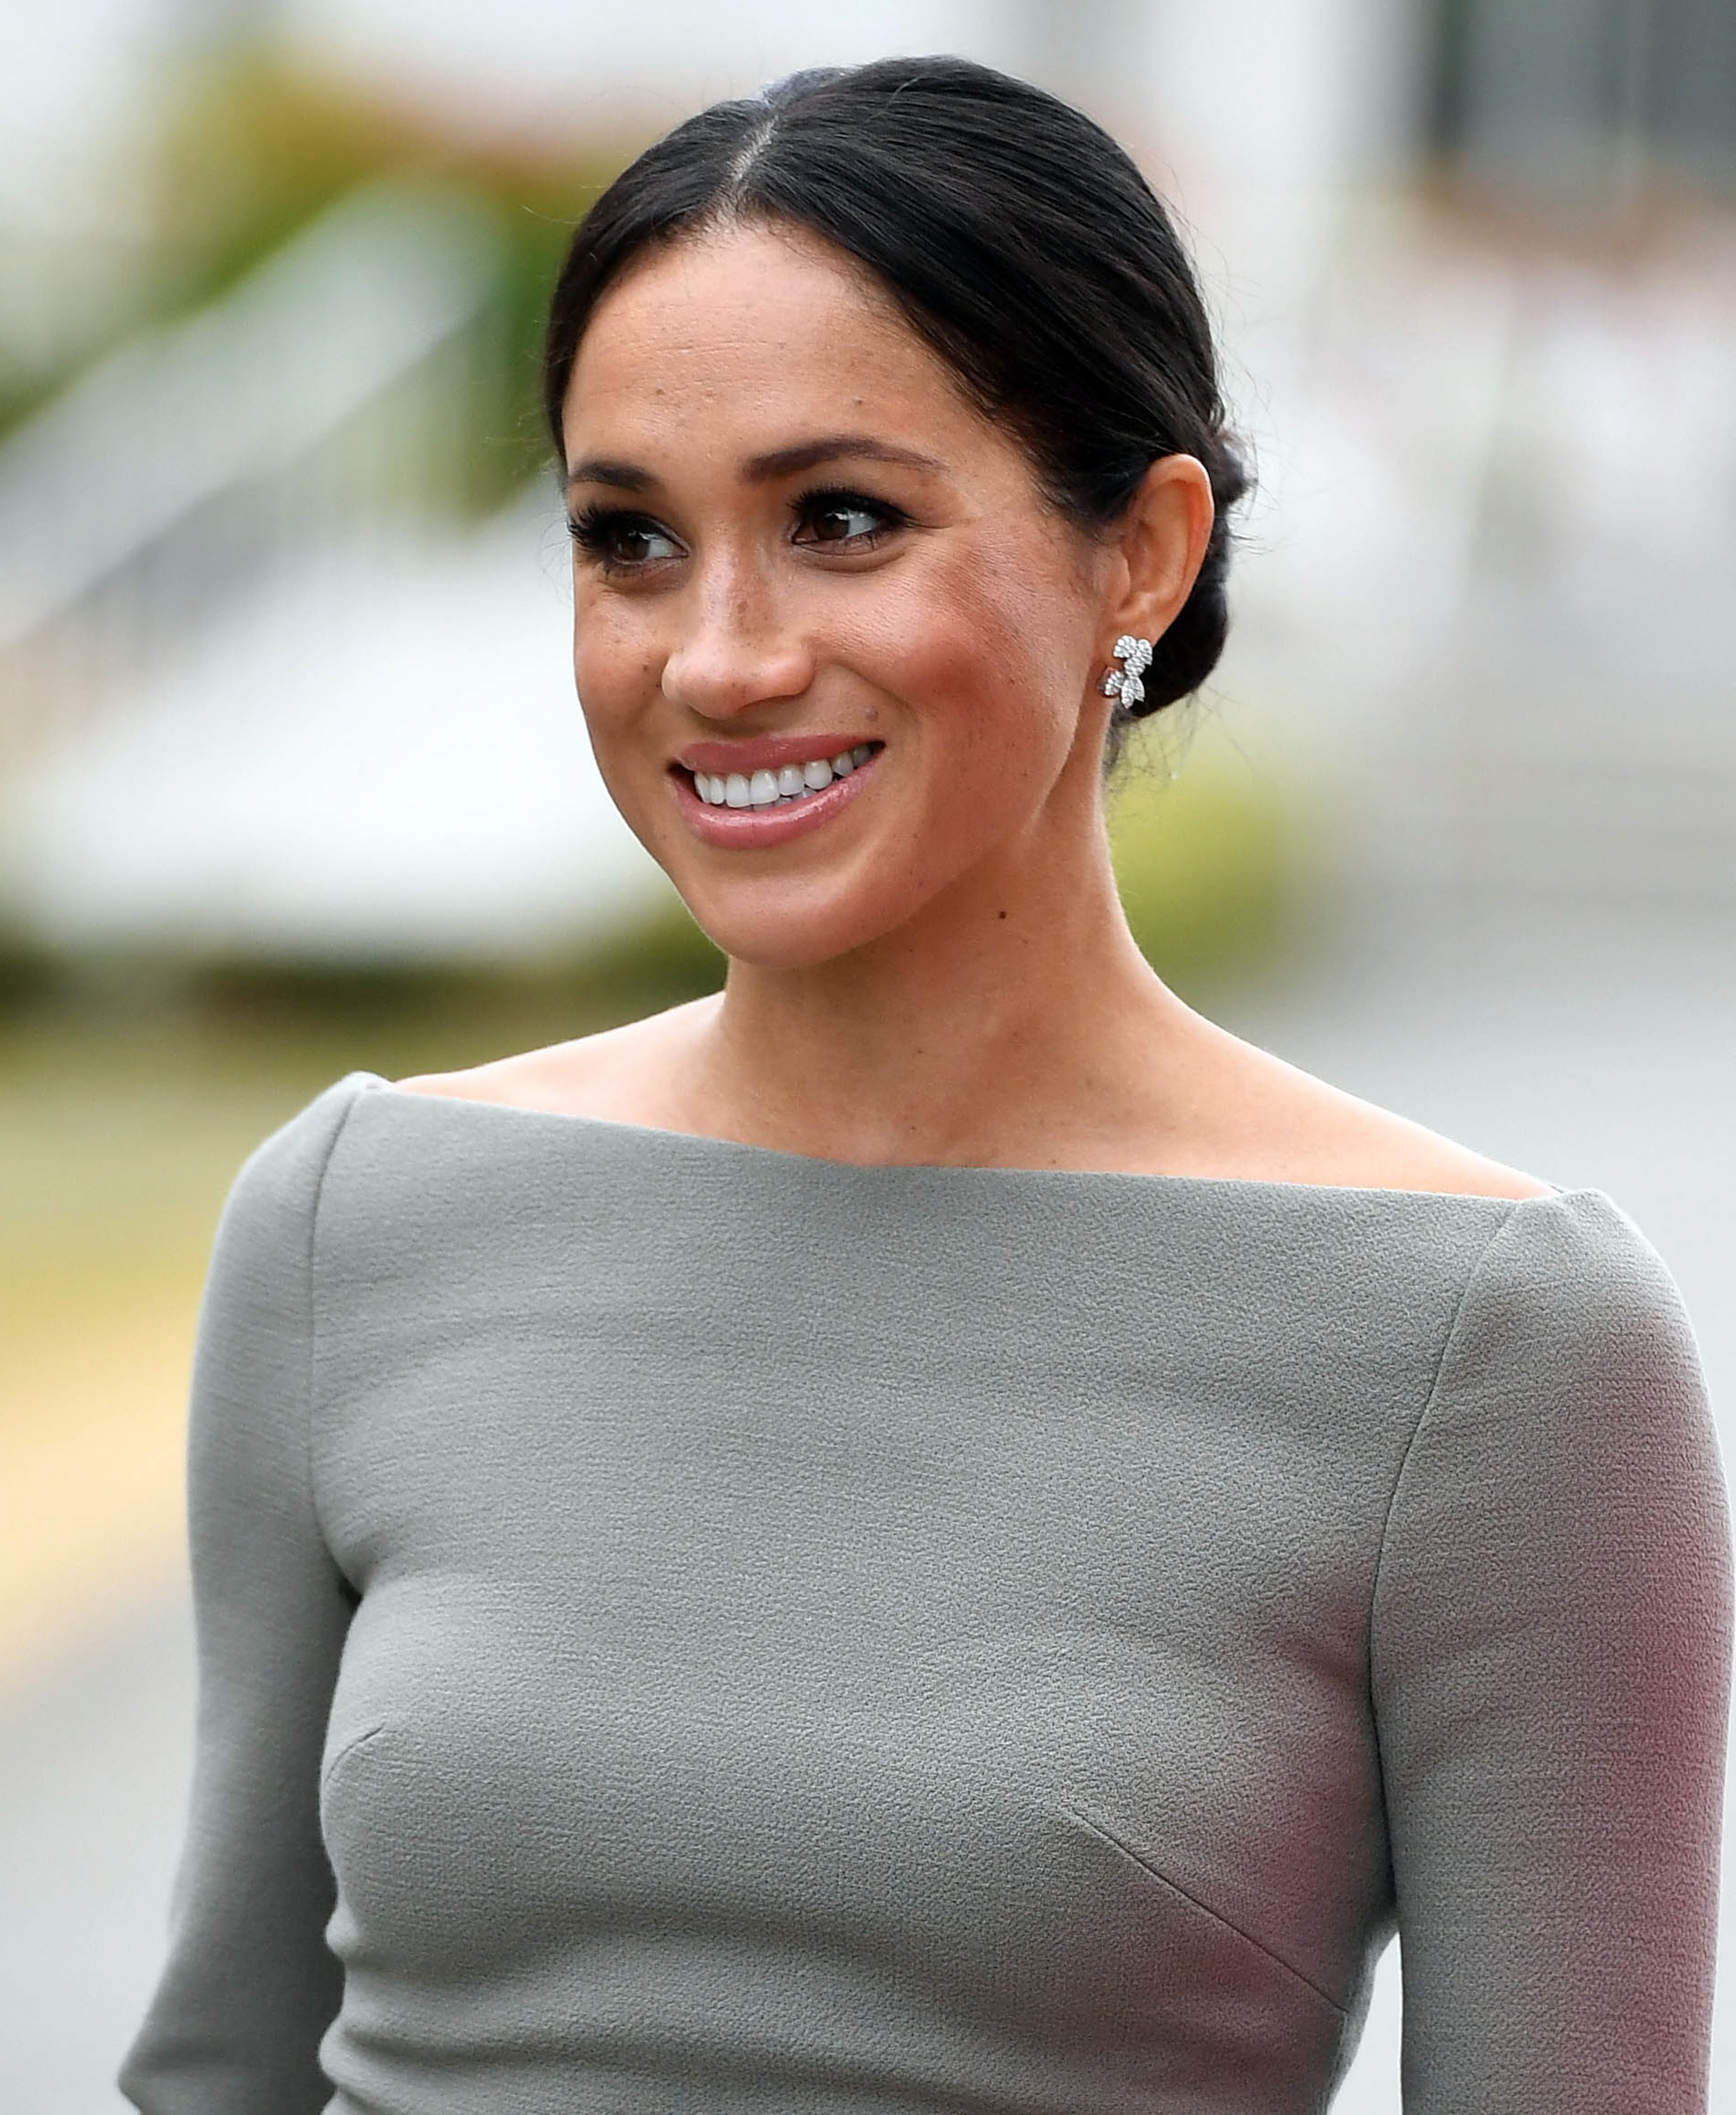 Why Meghan Markle Can't Have a Baby Shower